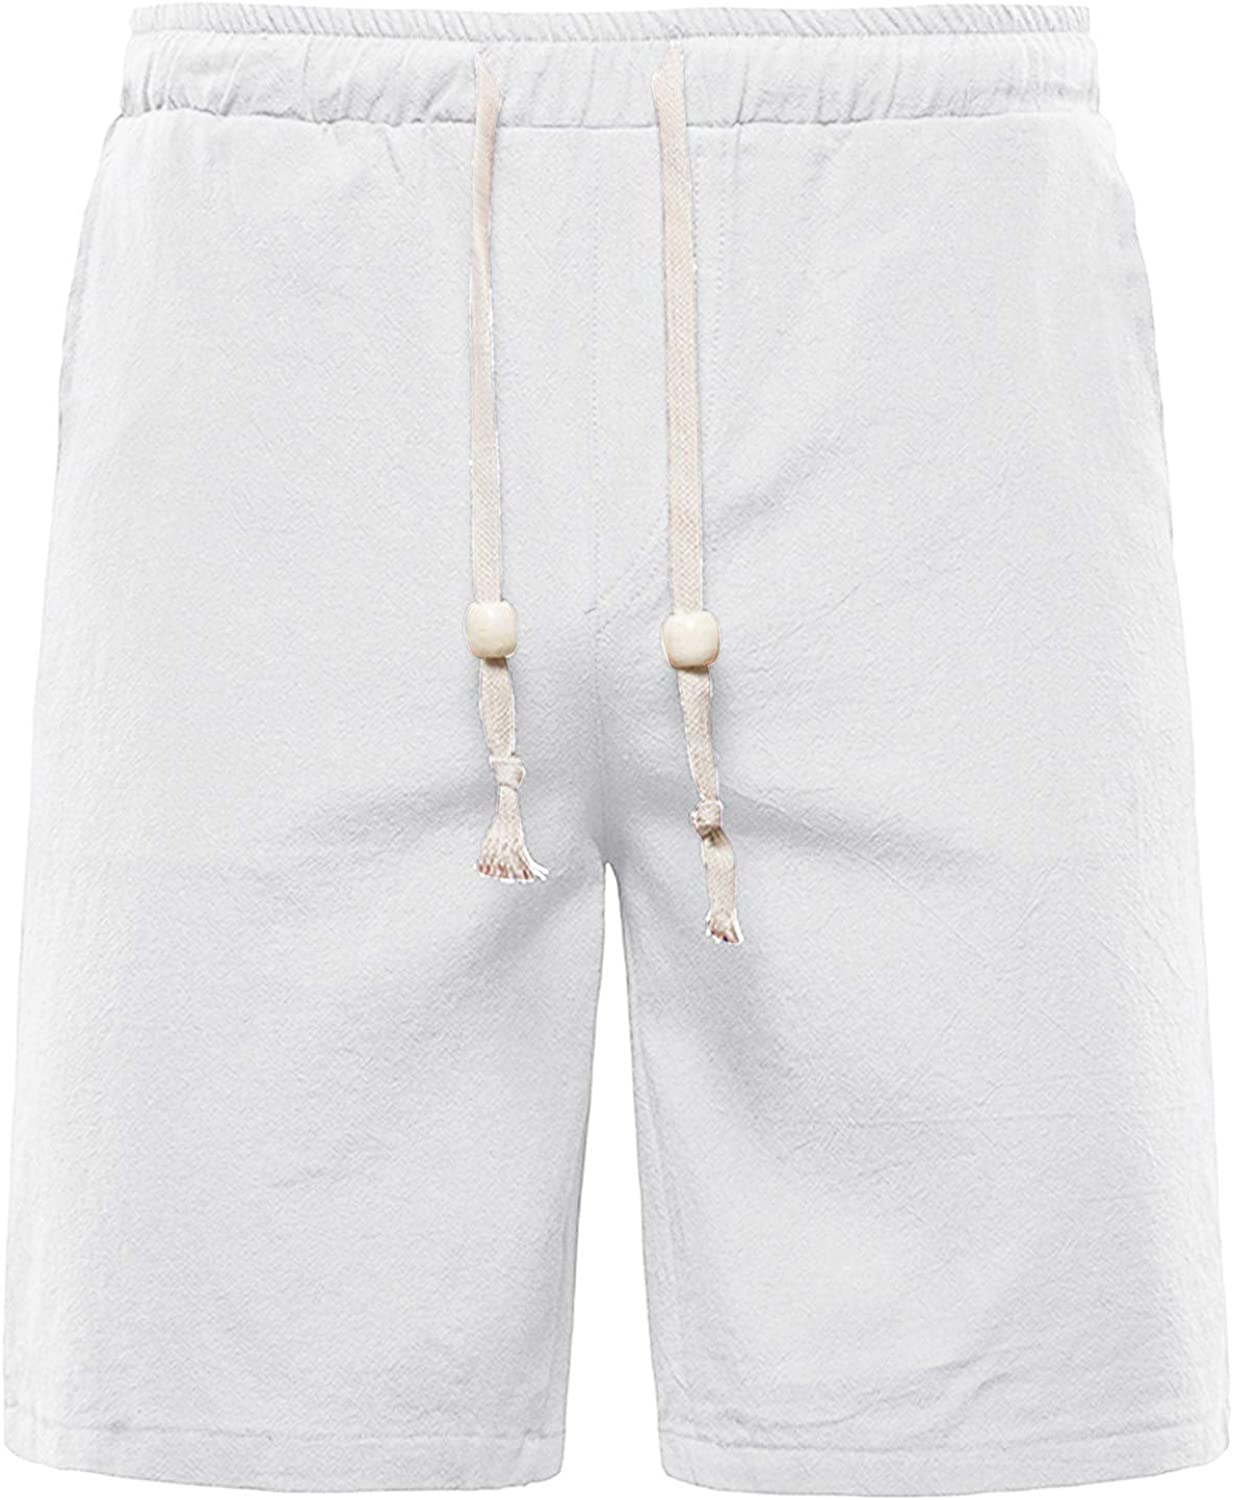 Shorts for Men F_Gotal High order Men's Casual Linen Solid Dra Opening large release sale Cotton